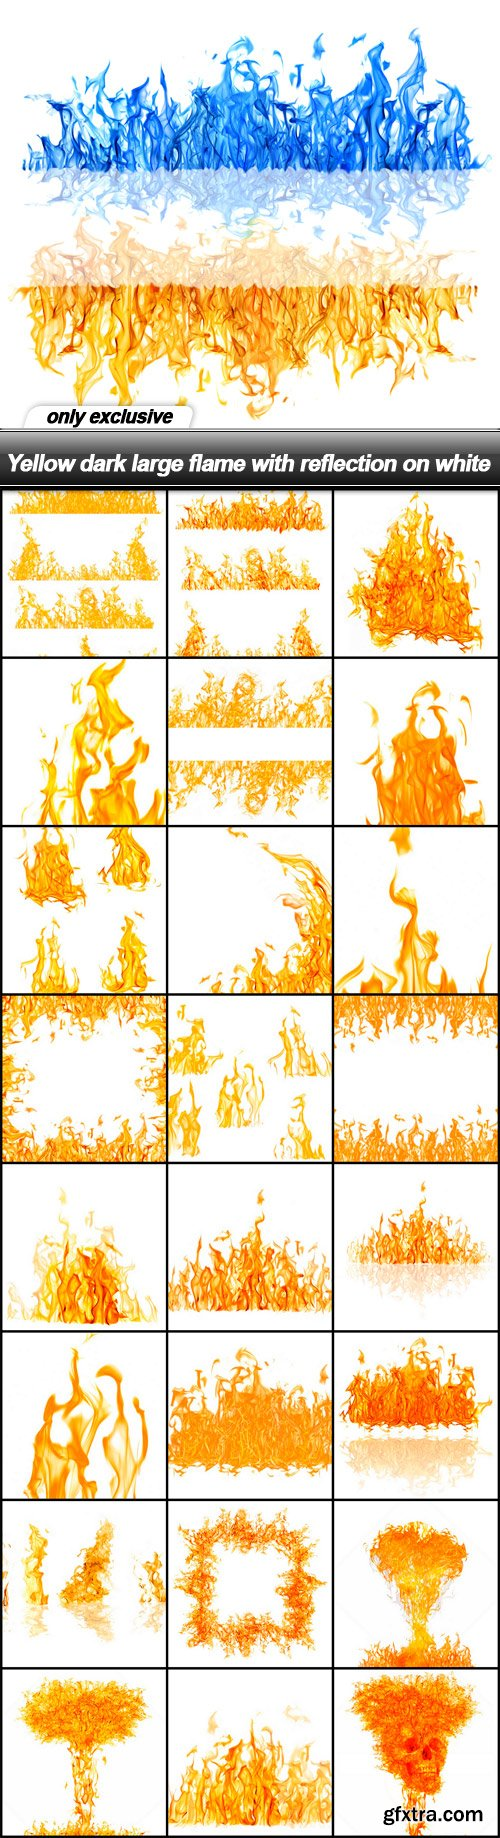 Yellow dark large flame with reflection on white - 25 UHQ JPEG